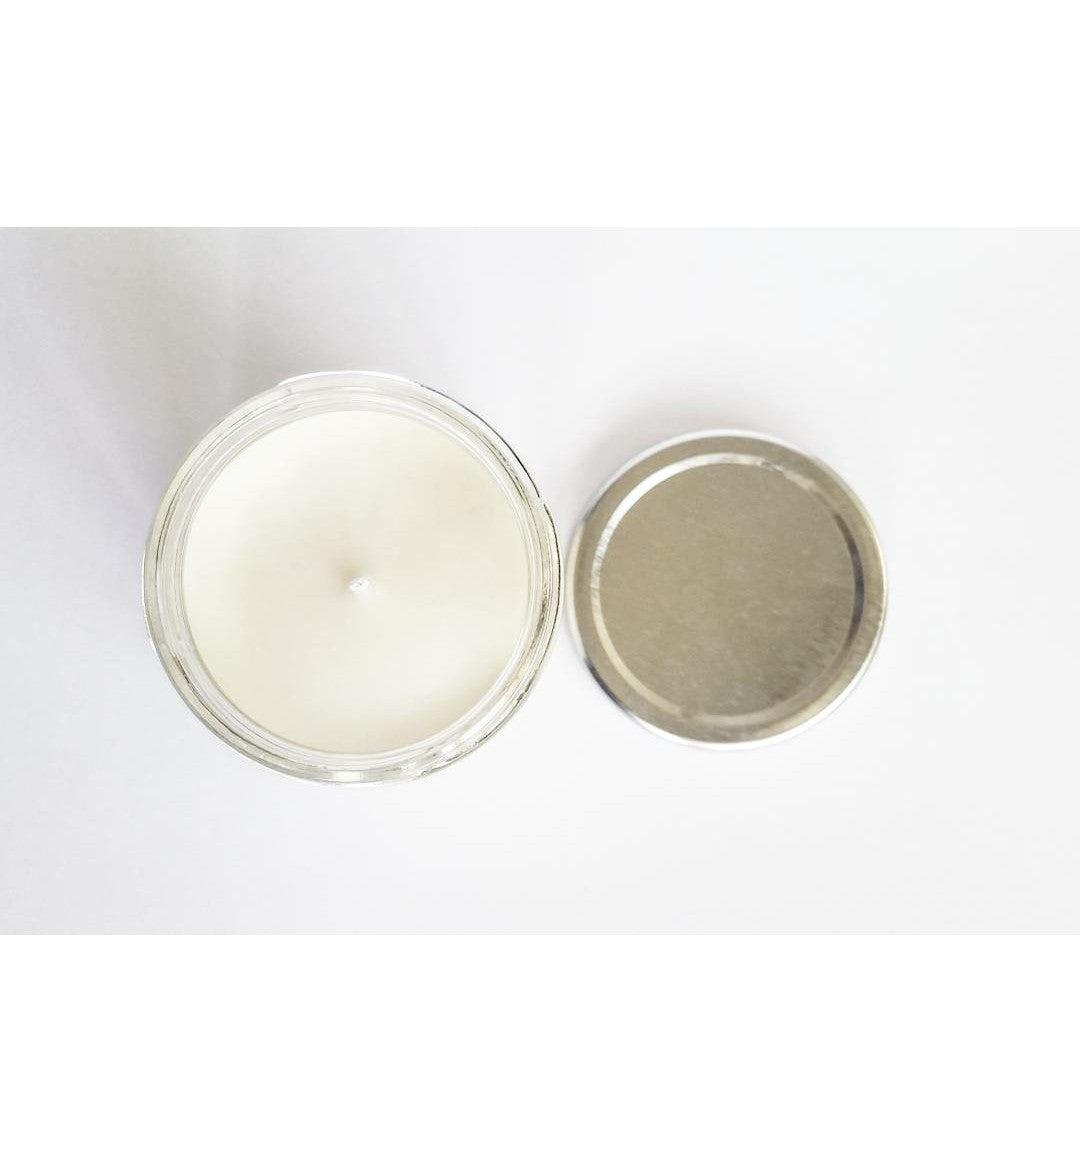 Woodsmoke Scented 7 oz Soy Candle